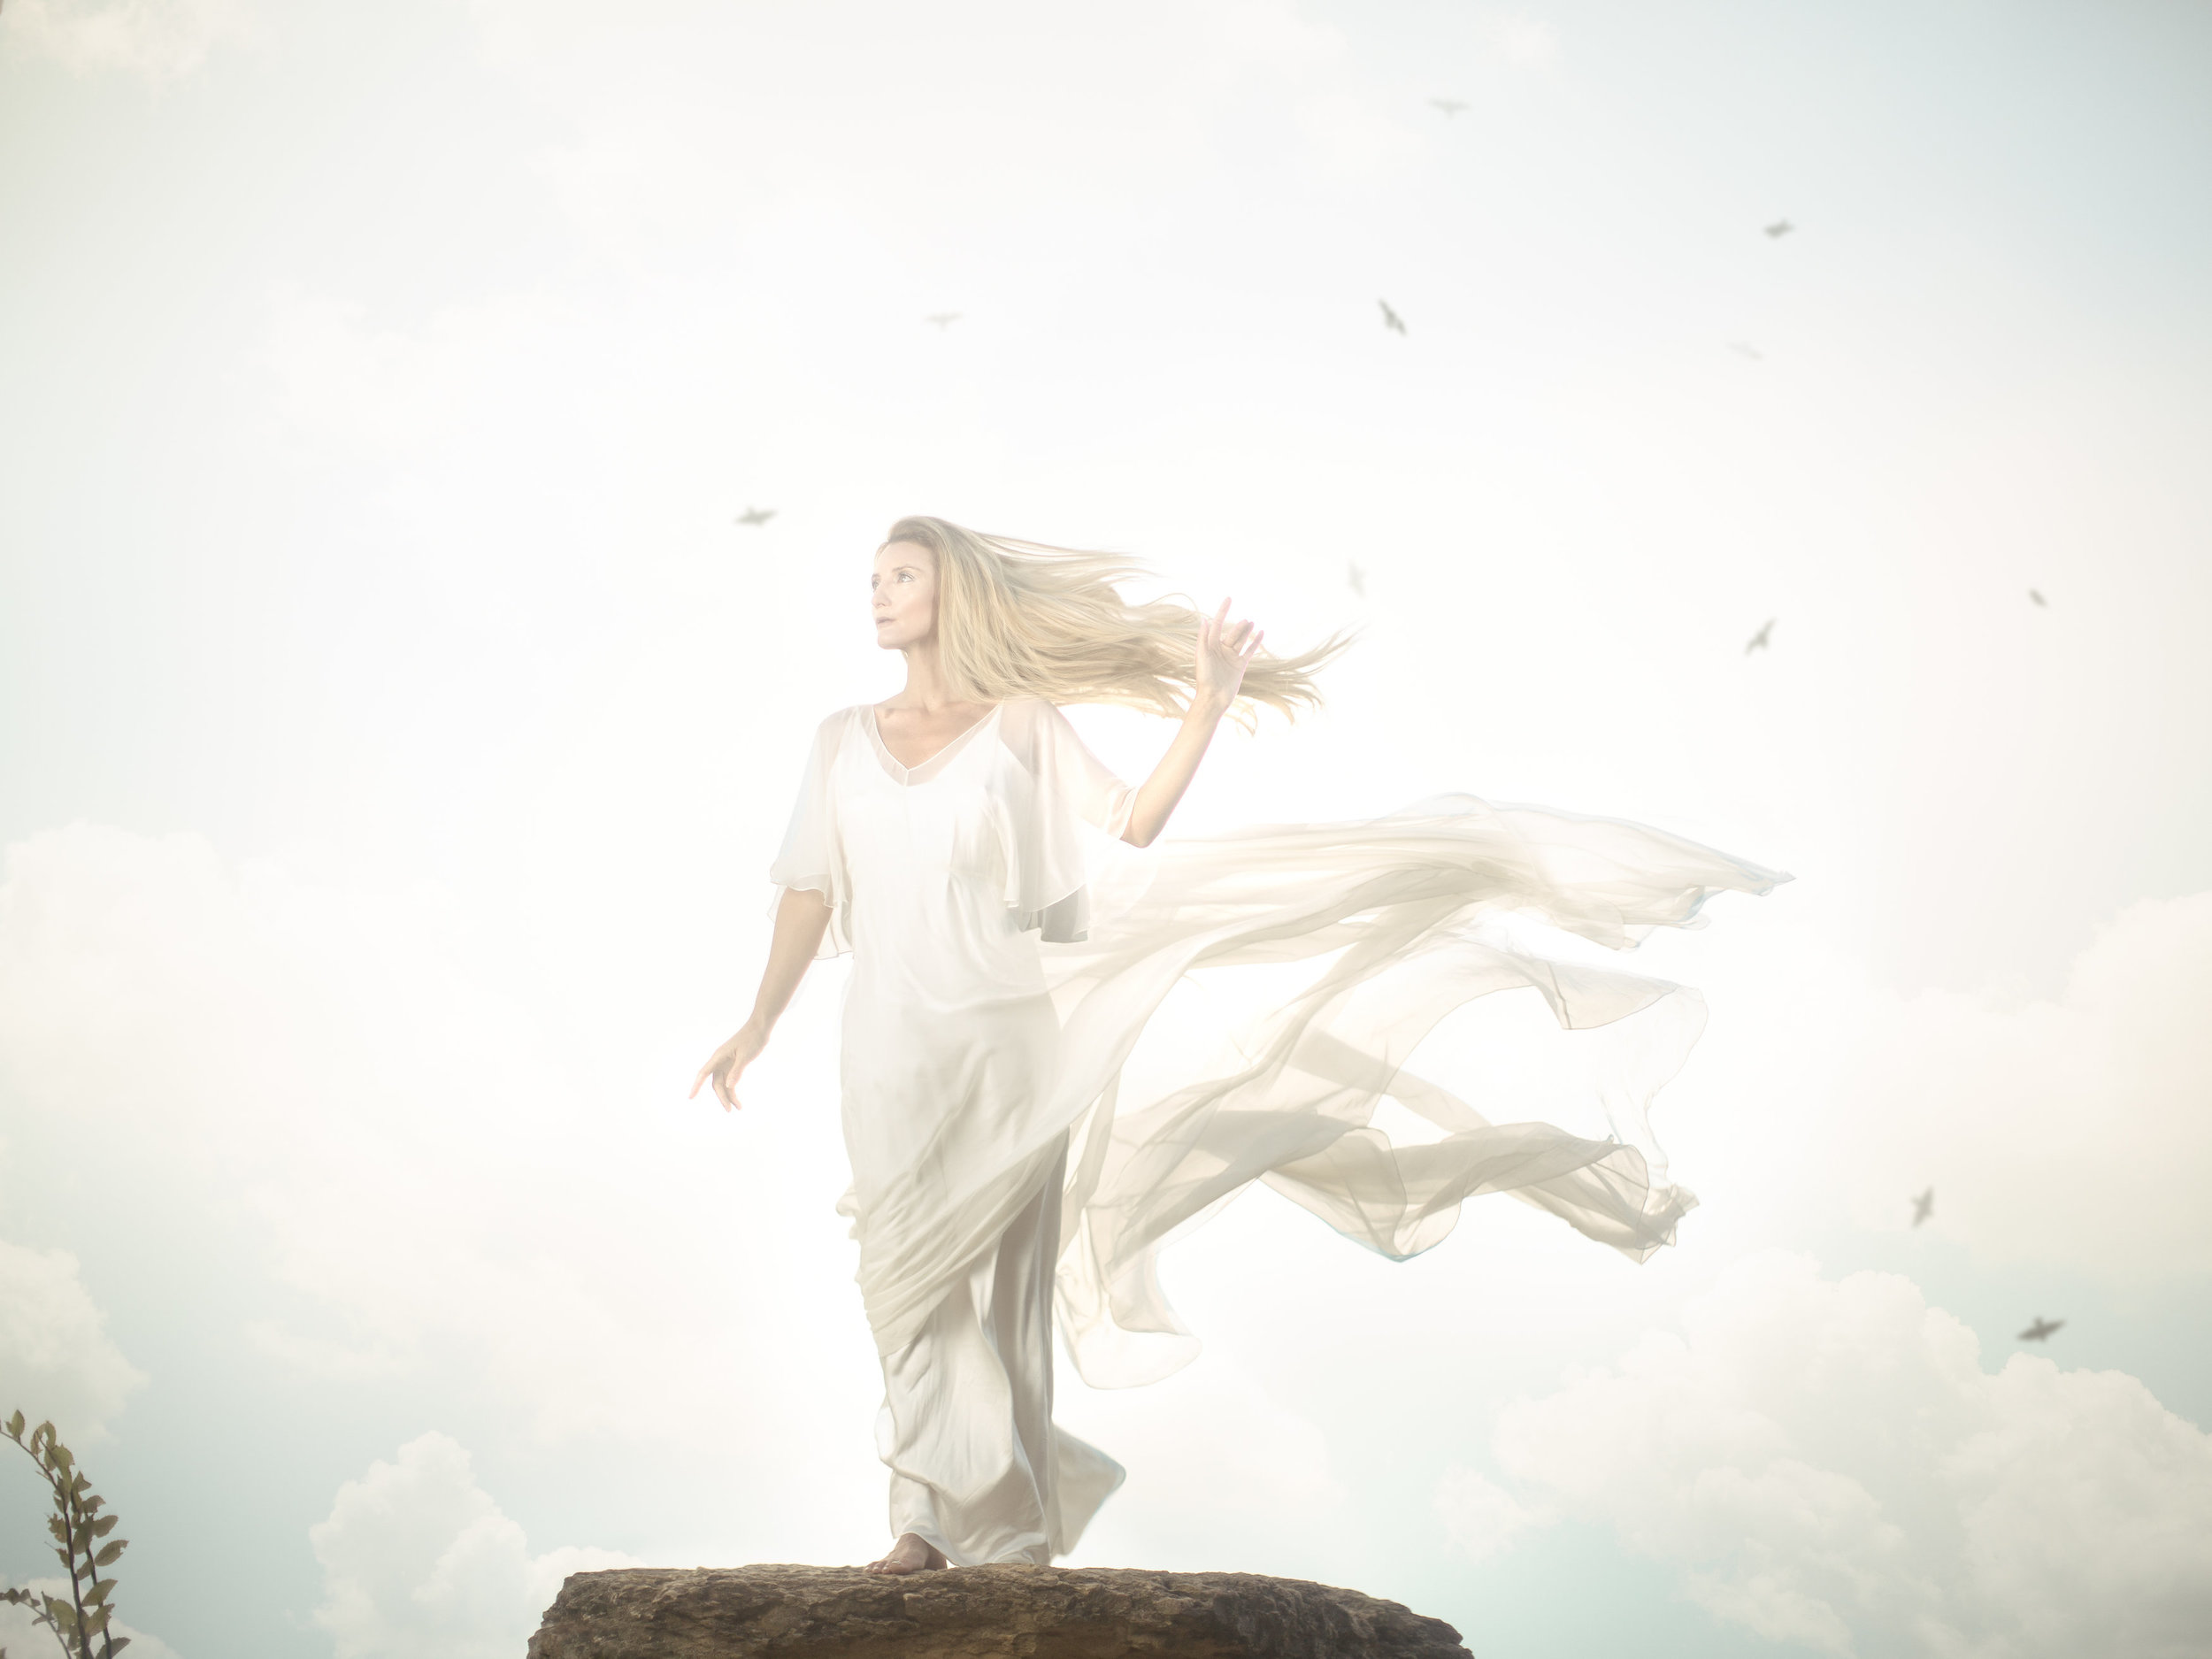 Wow. The Power of Wind  She lifts her hand and the birds cast flight. The operators of the heavens arise. From sea breeze gusts to hurricane power, this element will always circulate power. Arise and honor her strength, for she is the one who catches your dreams.